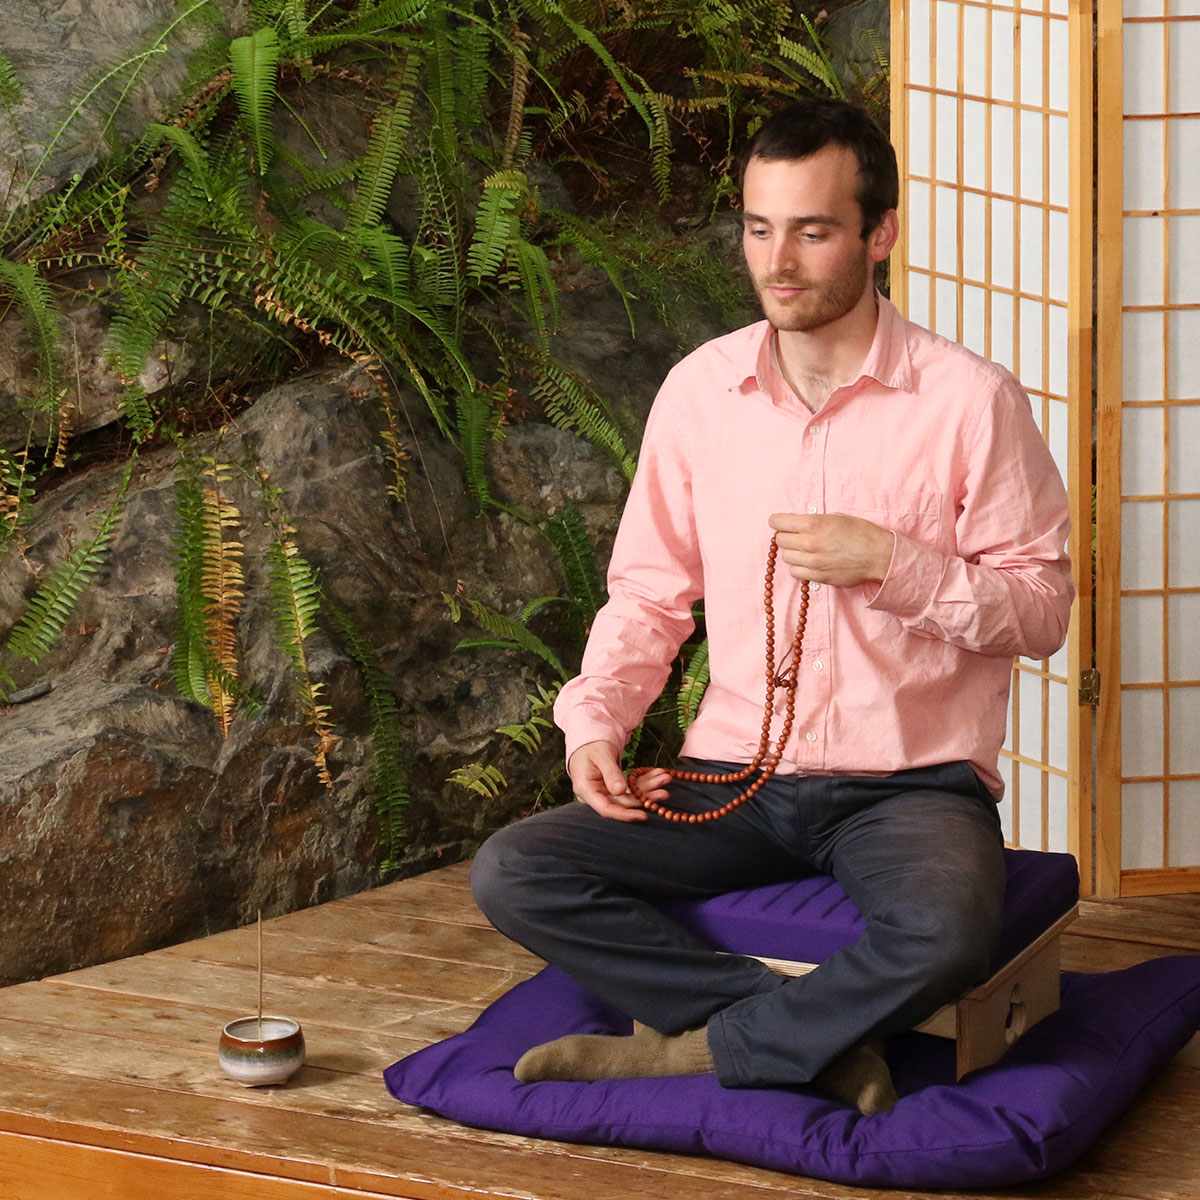 Choose A Low Cloud Meditation Bench Set in Natural with Purple Cloud Bench Cushion and Purple Zabuton